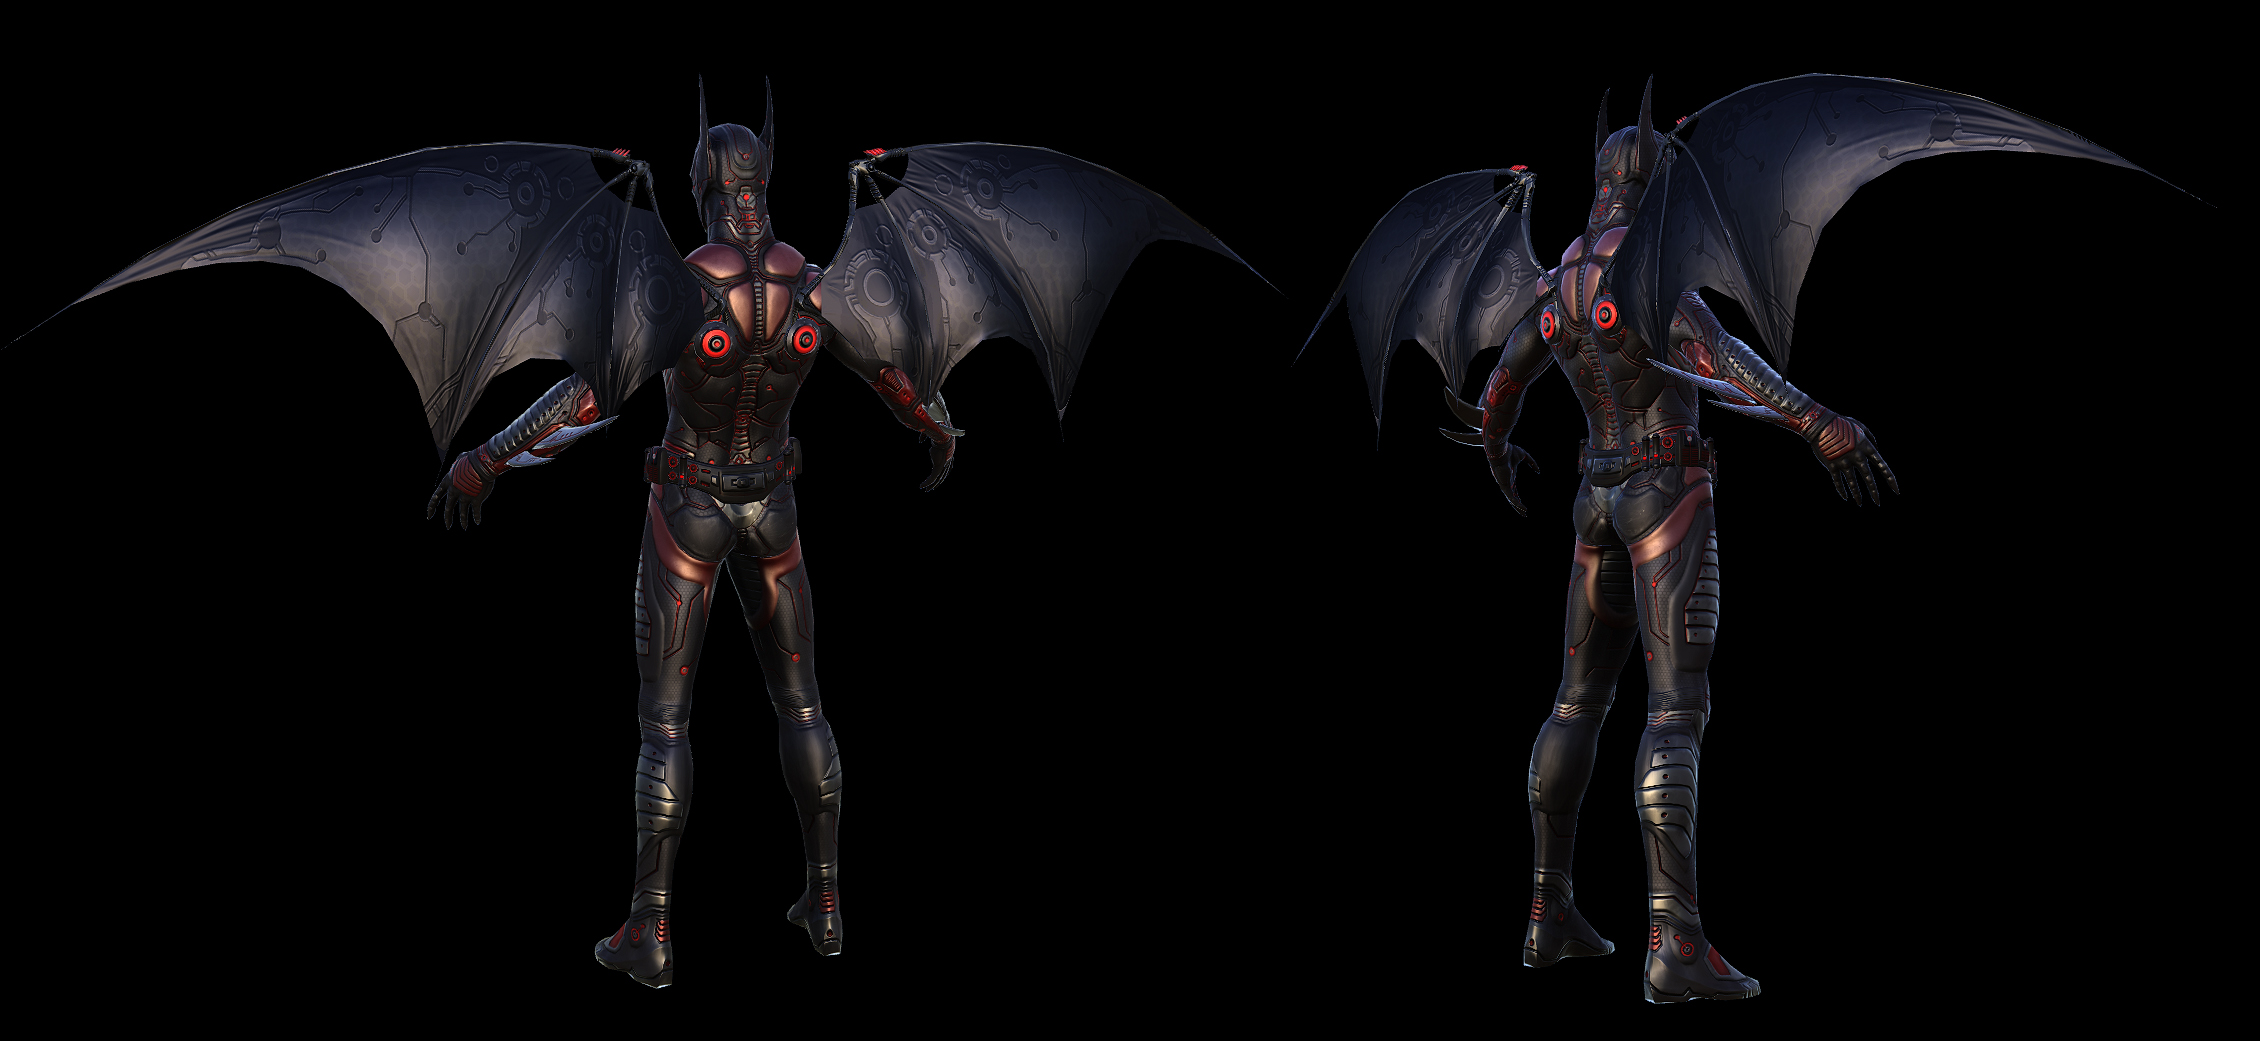 batmanbeyond21320122.jpg